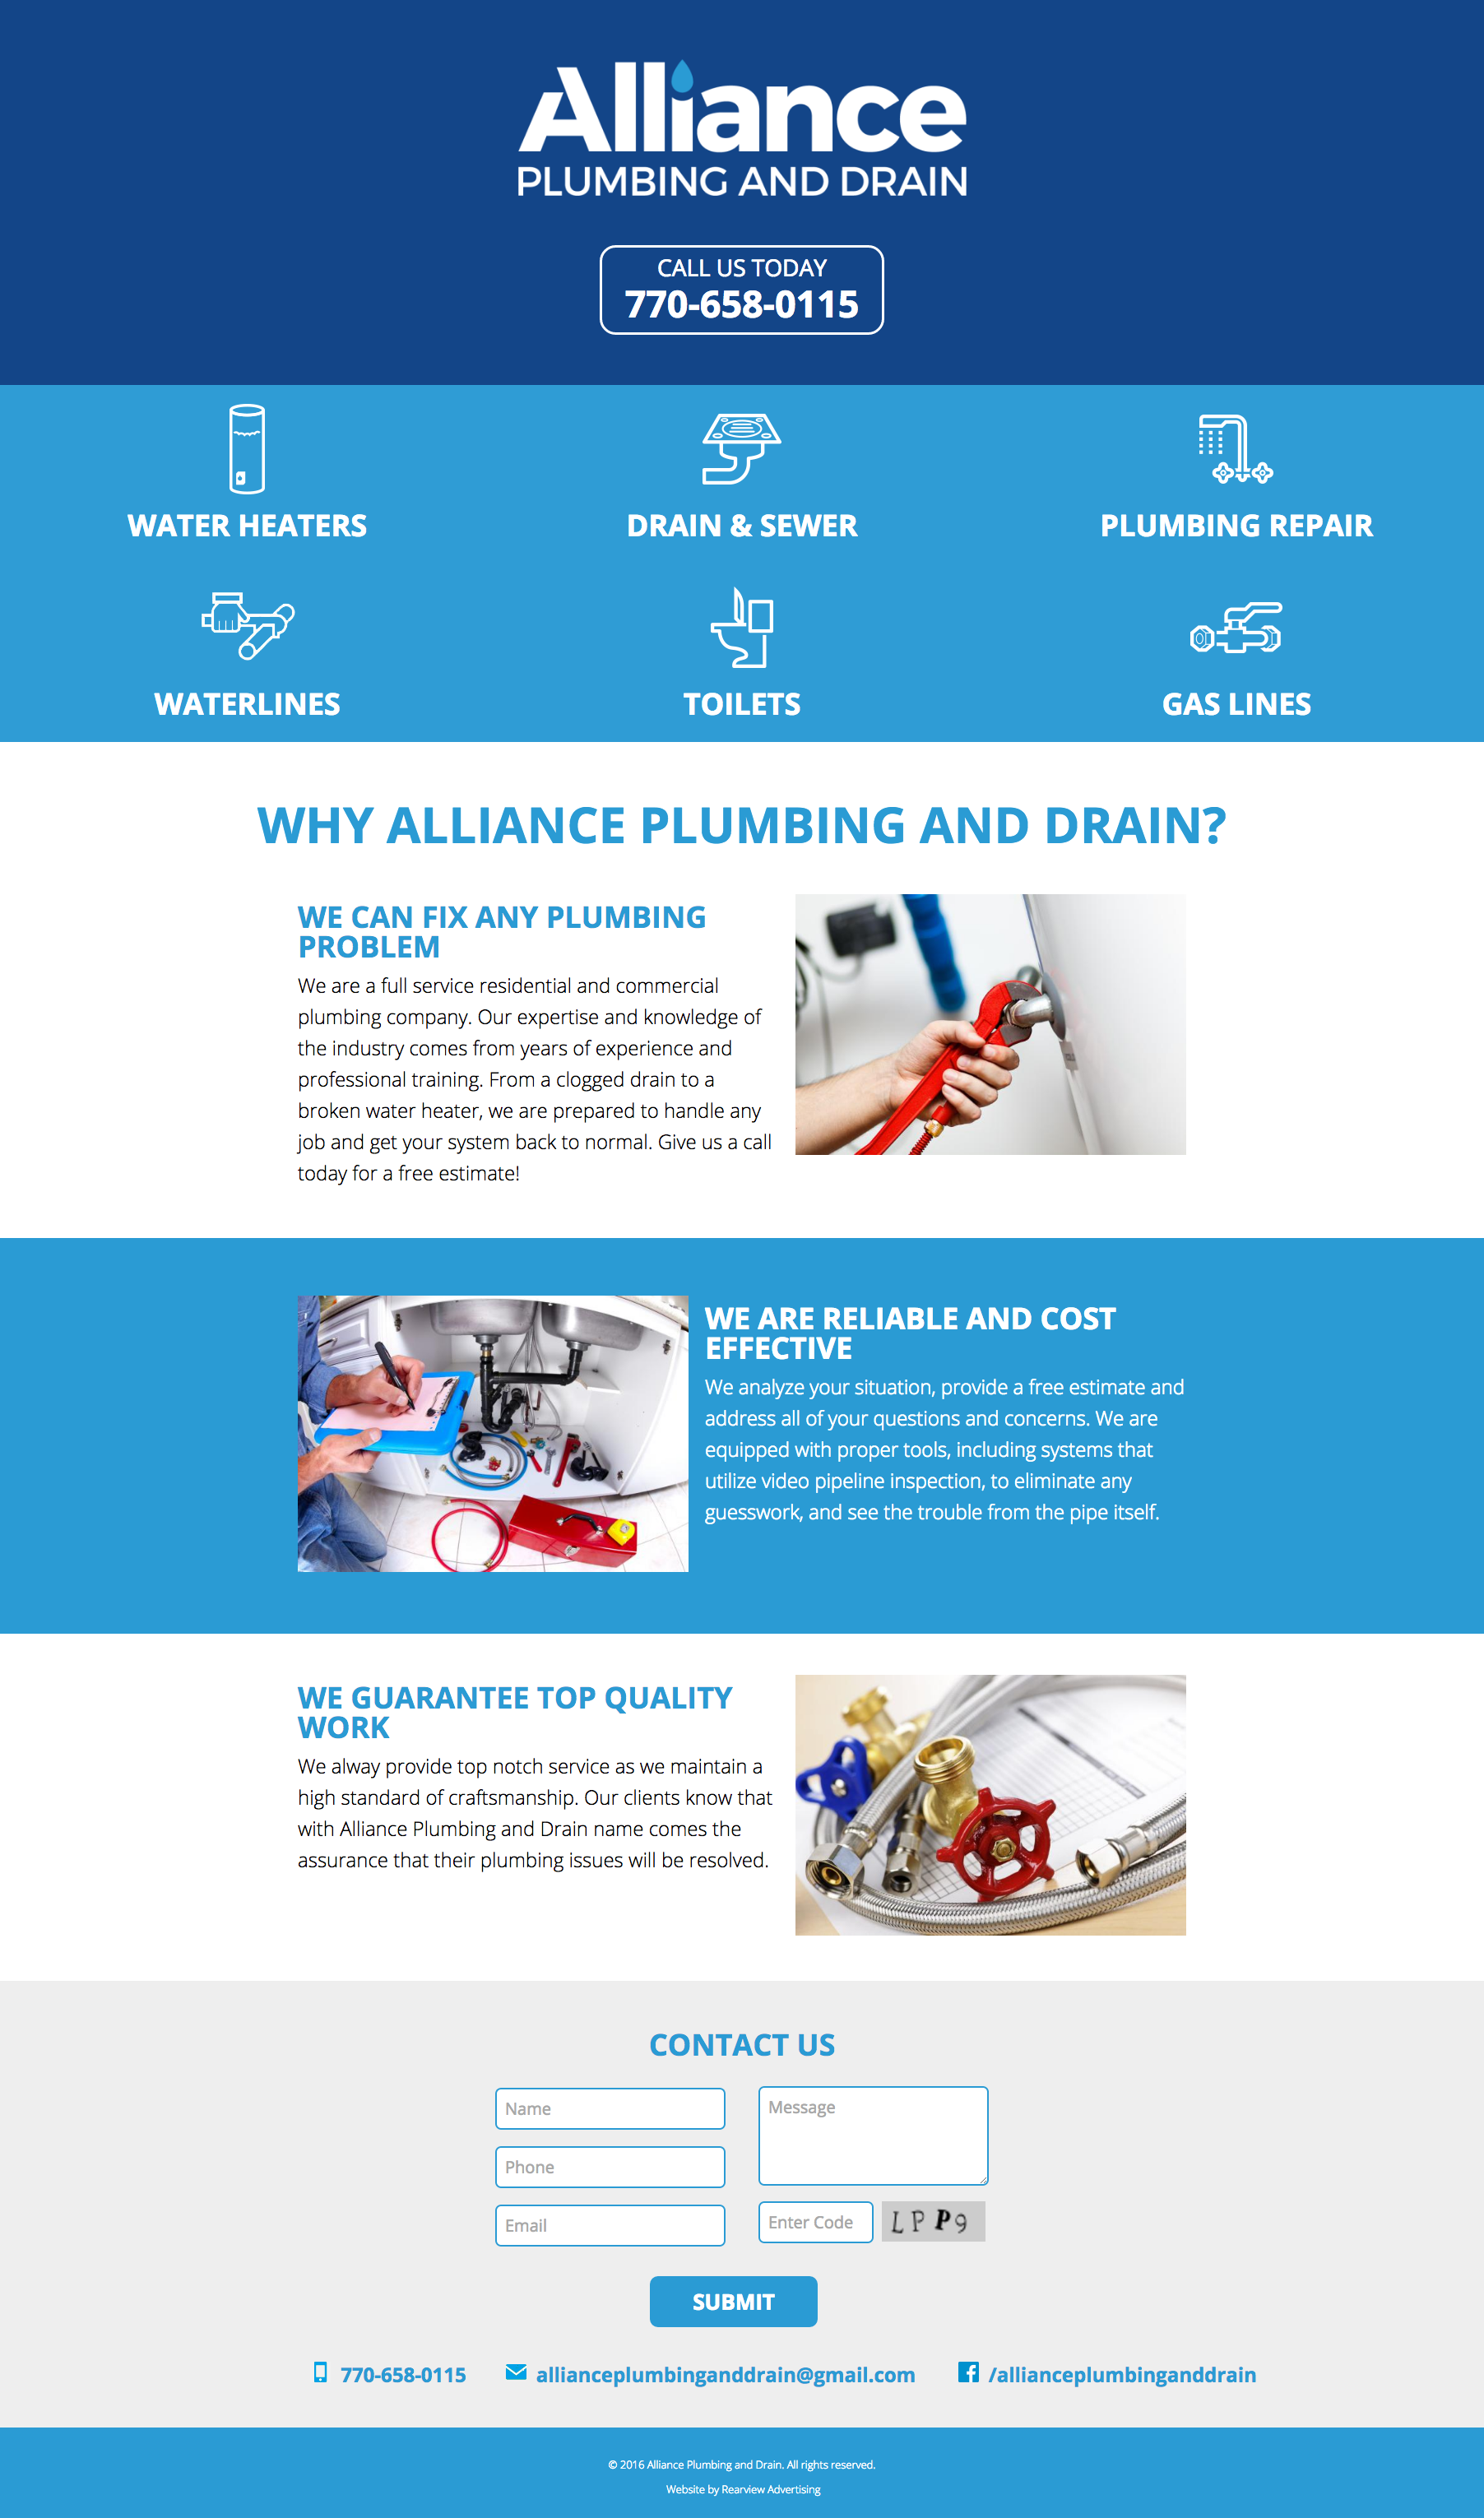 screencapture-allianceplumbinganddrain-1472662453857